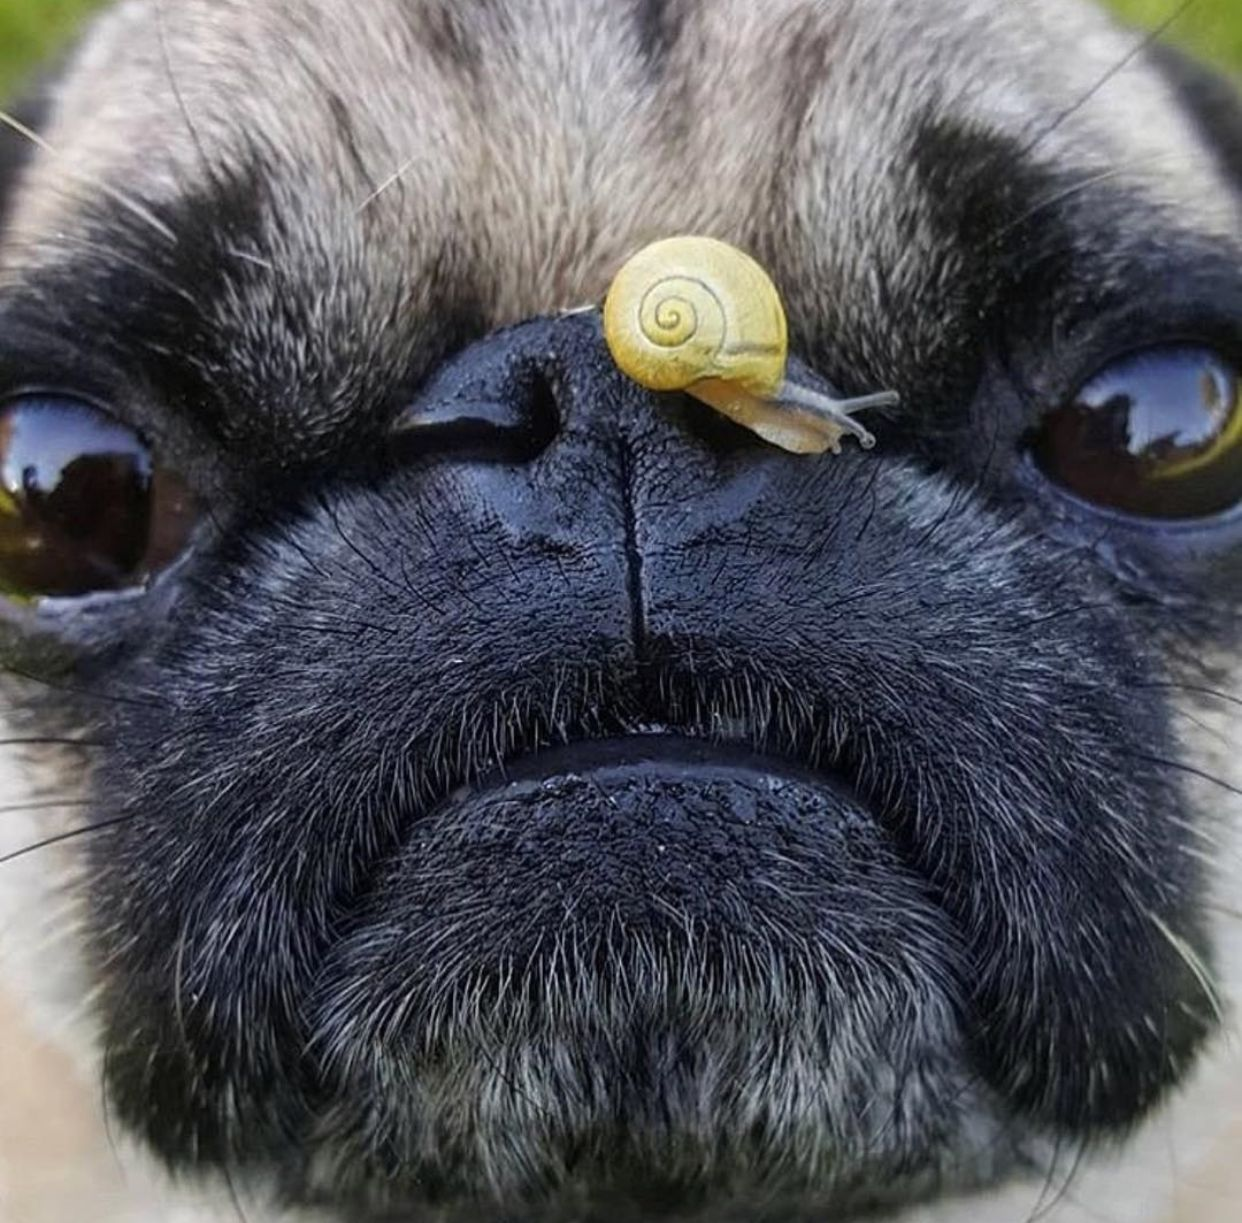 Pin by Tanya B on Animals Pugs Cute animals Dogs